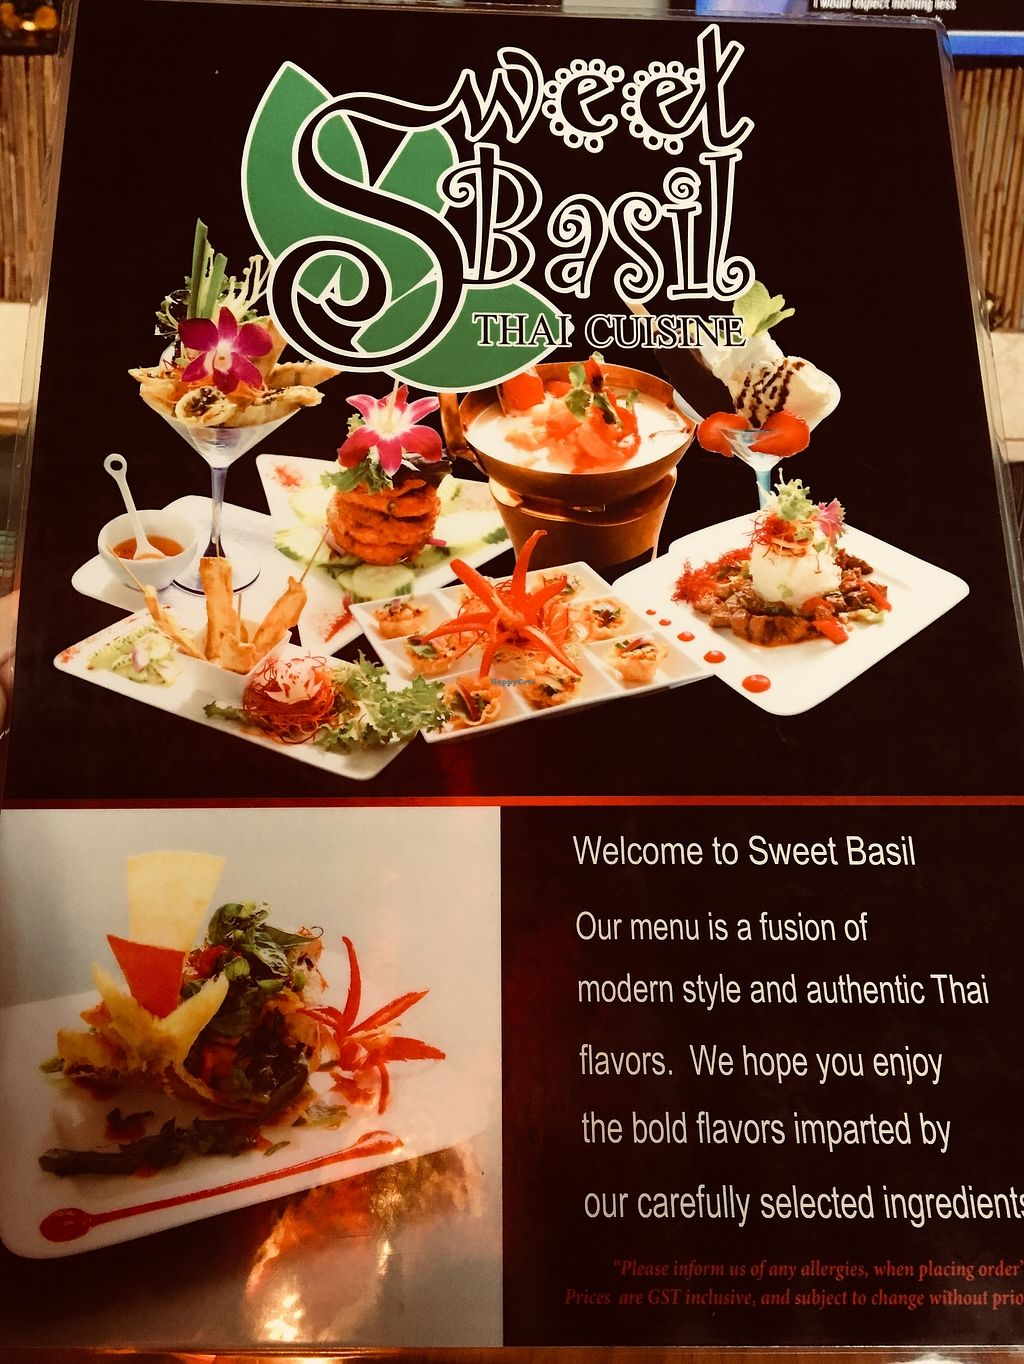 """Photo of Sweet Basil Thai Cuisine  by <a href=""""/members/profile/Clean%26Green"""">Clean&Green</a> <br/>Sweet Basil Thai <br/> January 10, 2018  - <a href='/contact/abuse/image/109200/345178'>Report</a>"""